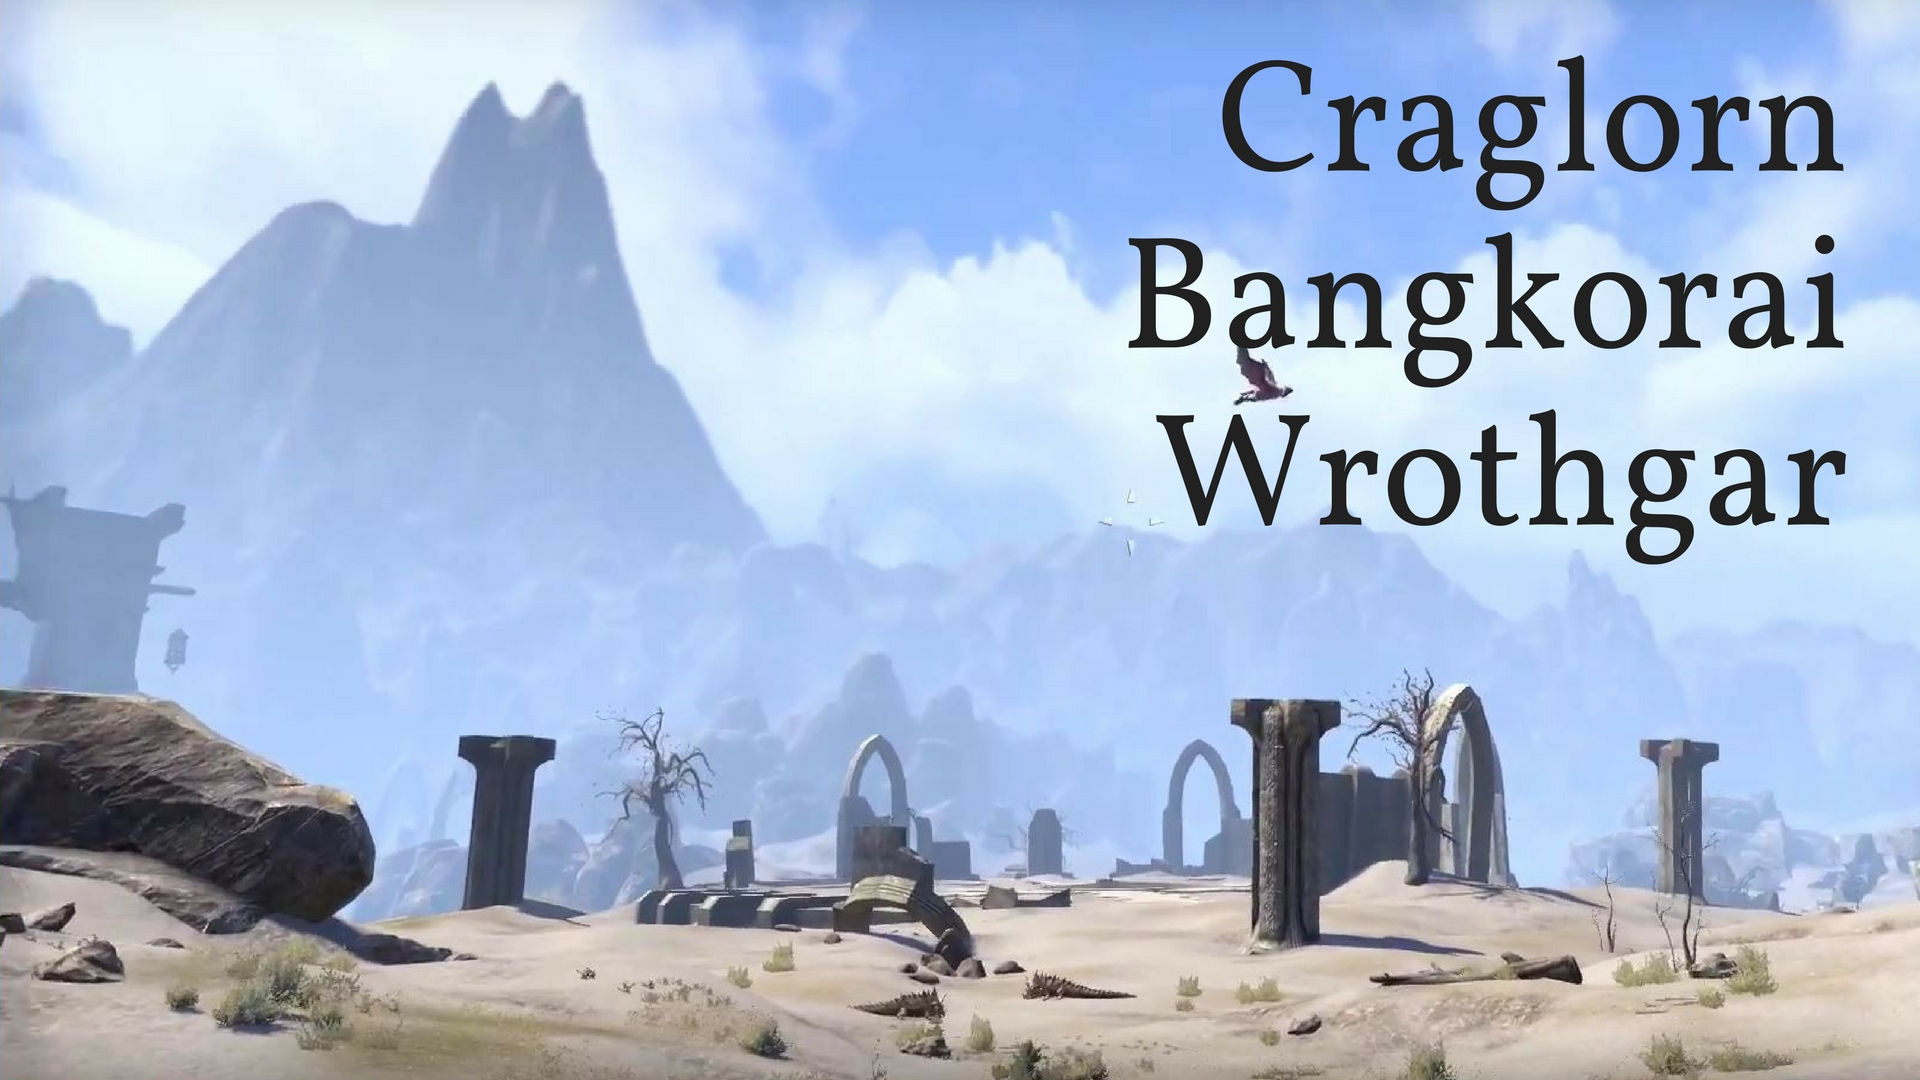 ESO Craglorn, Bangkorai & Wrothgar - Walk Across the Maps - How Big ...